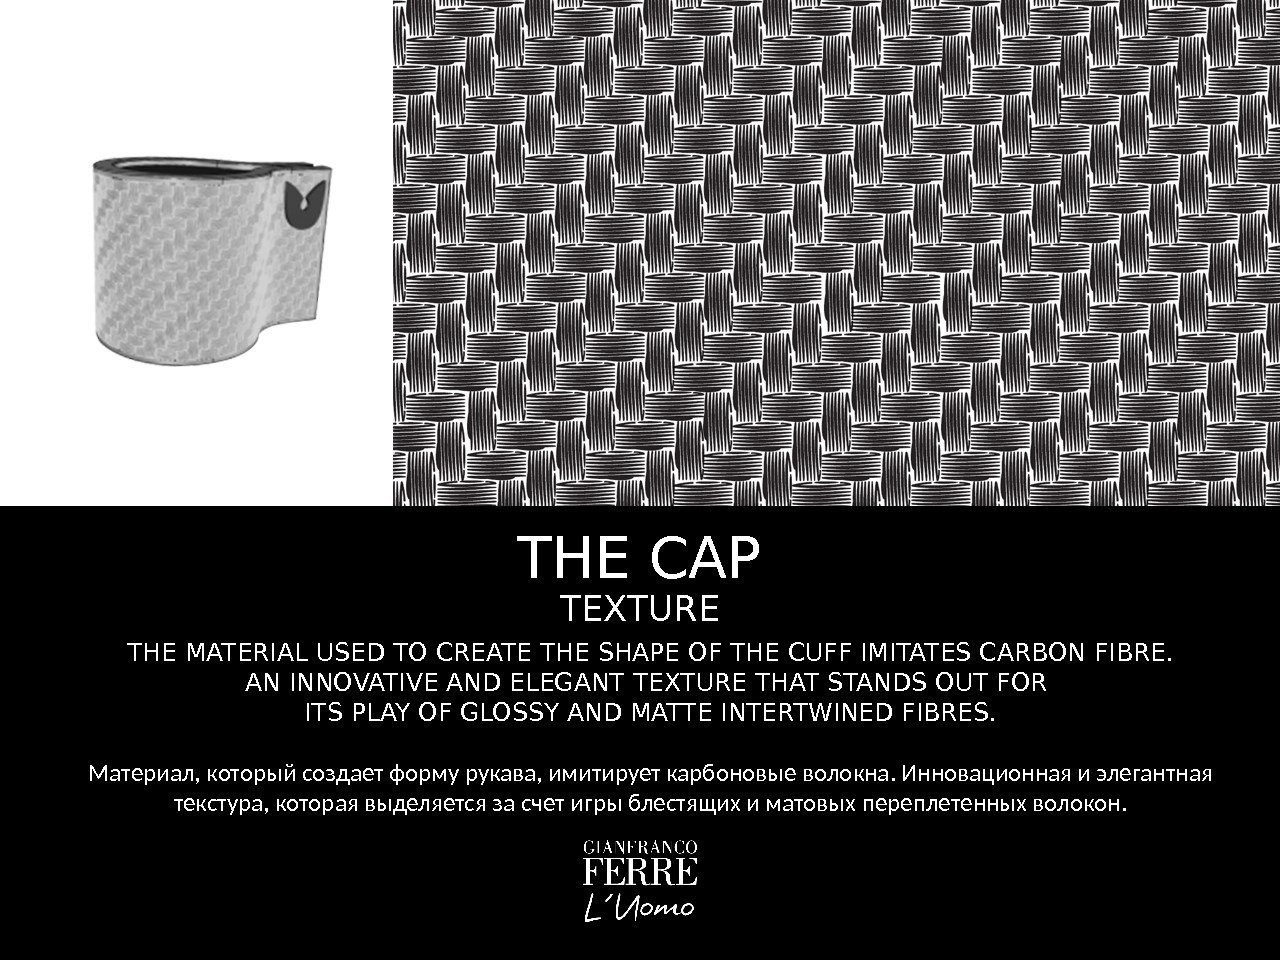 THE CAP THE MATERIAL USED TO CREATE THE SHAPE OF THE CUFF IMITATES CARBON